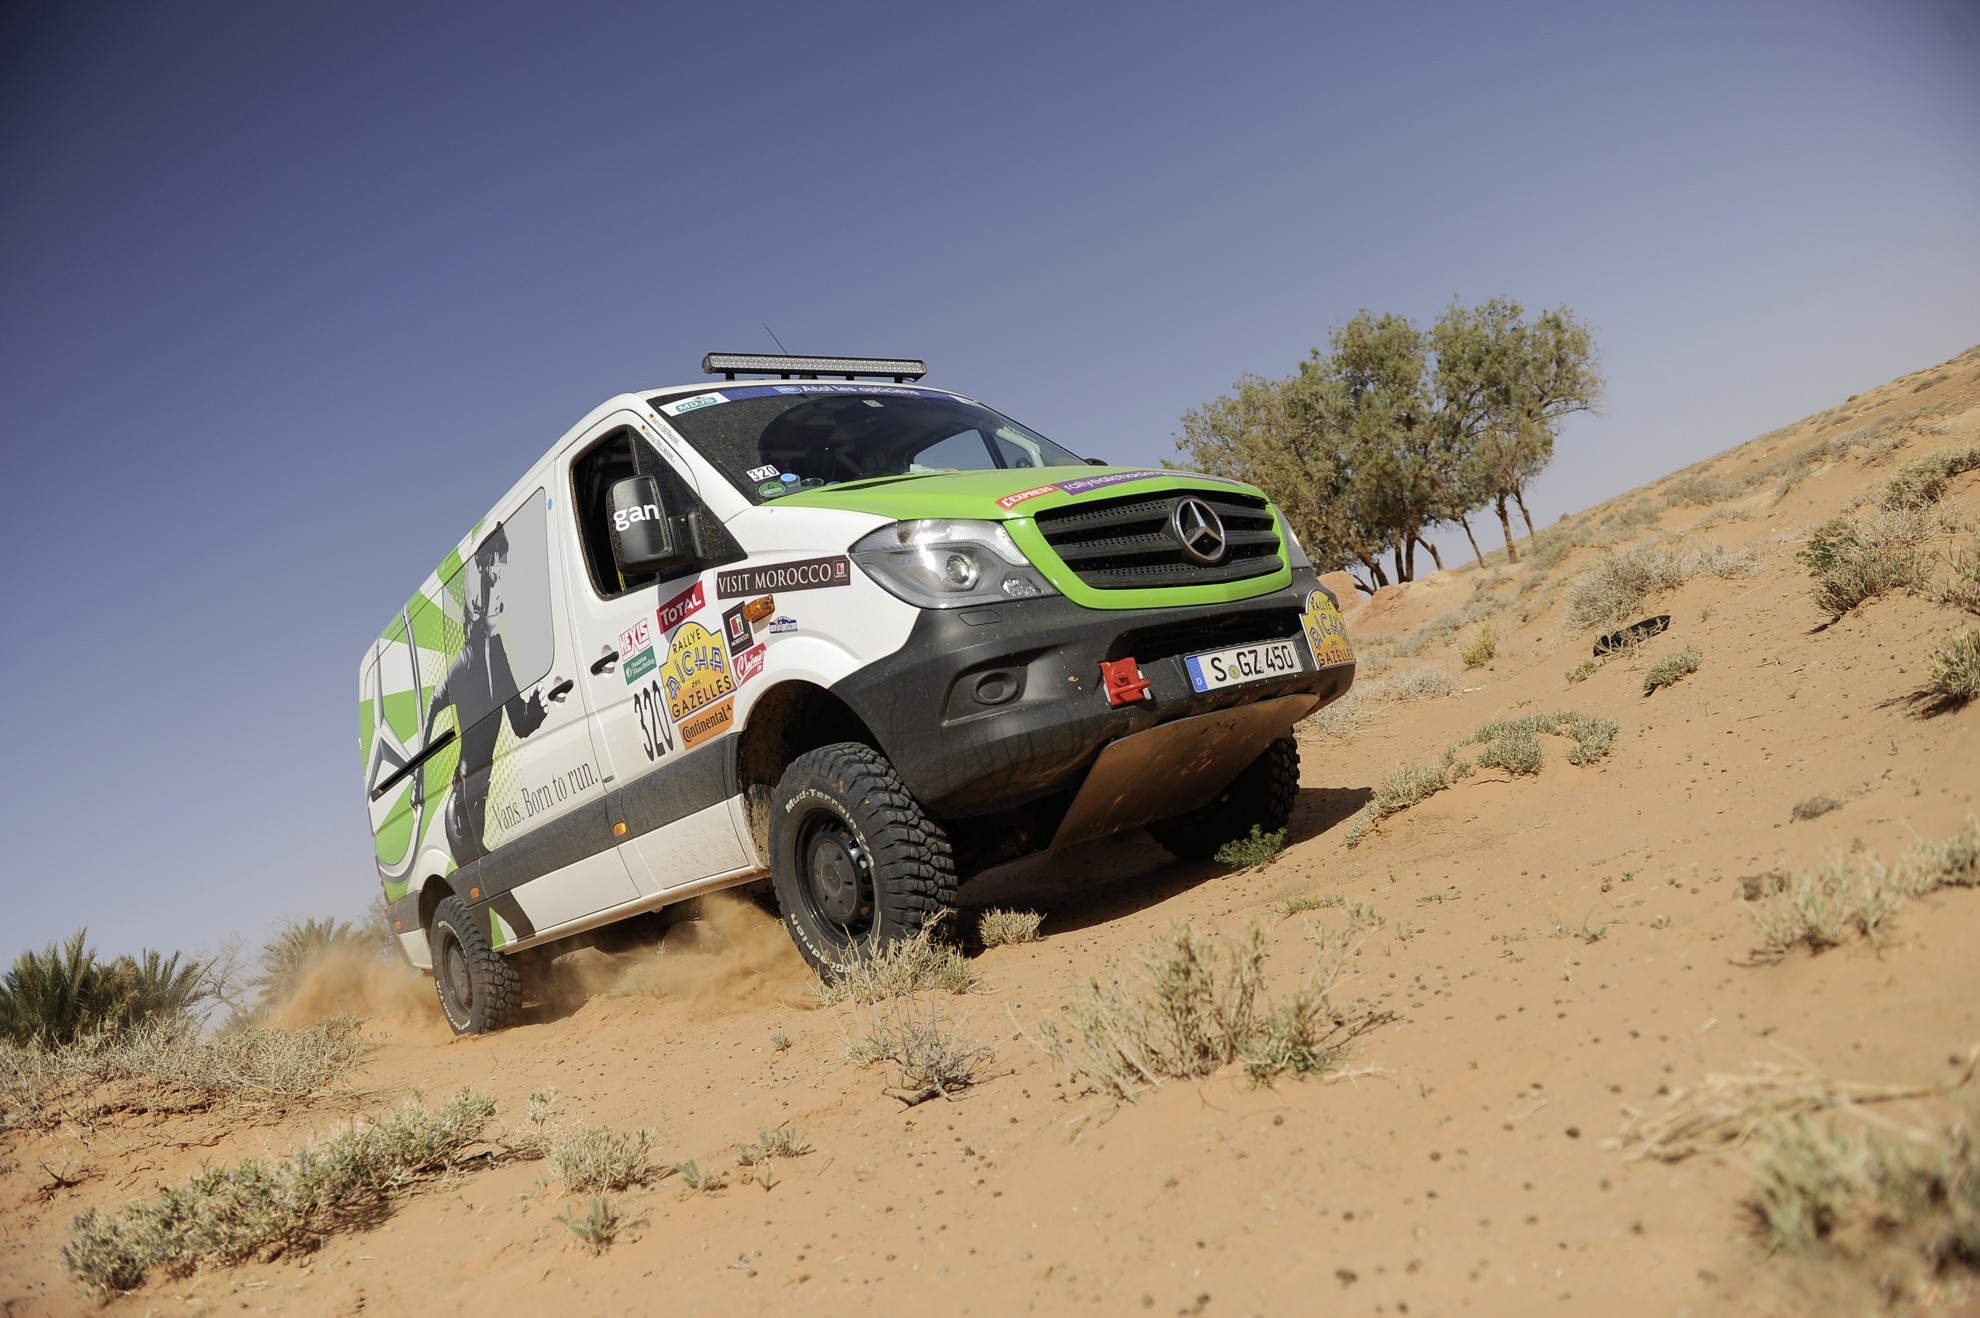 new sprinter 4x4 wins 24th rallye a cha des gazelles in morocco. Black Bedroom Furniture Sets. Home Design Ideas